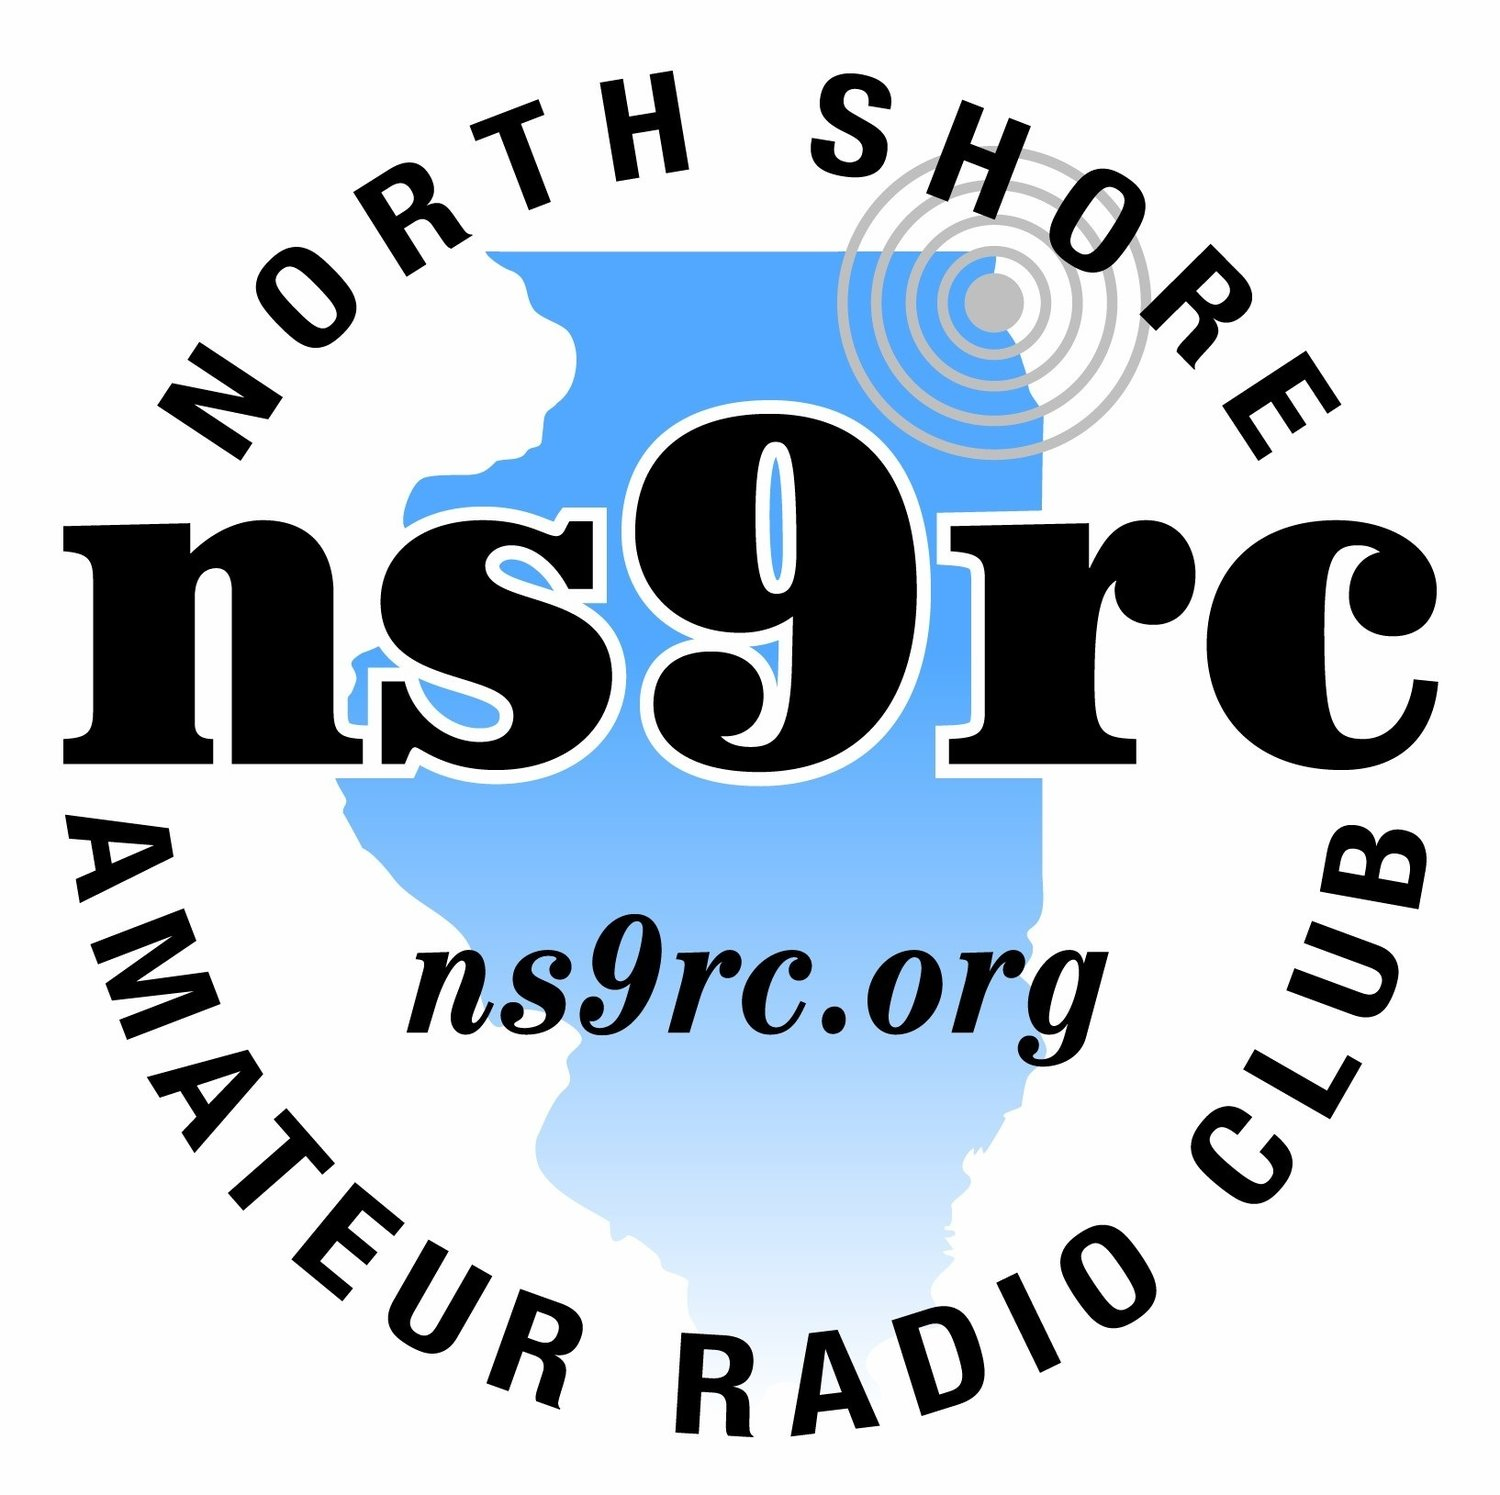 North Shore Radio Club NS9RC